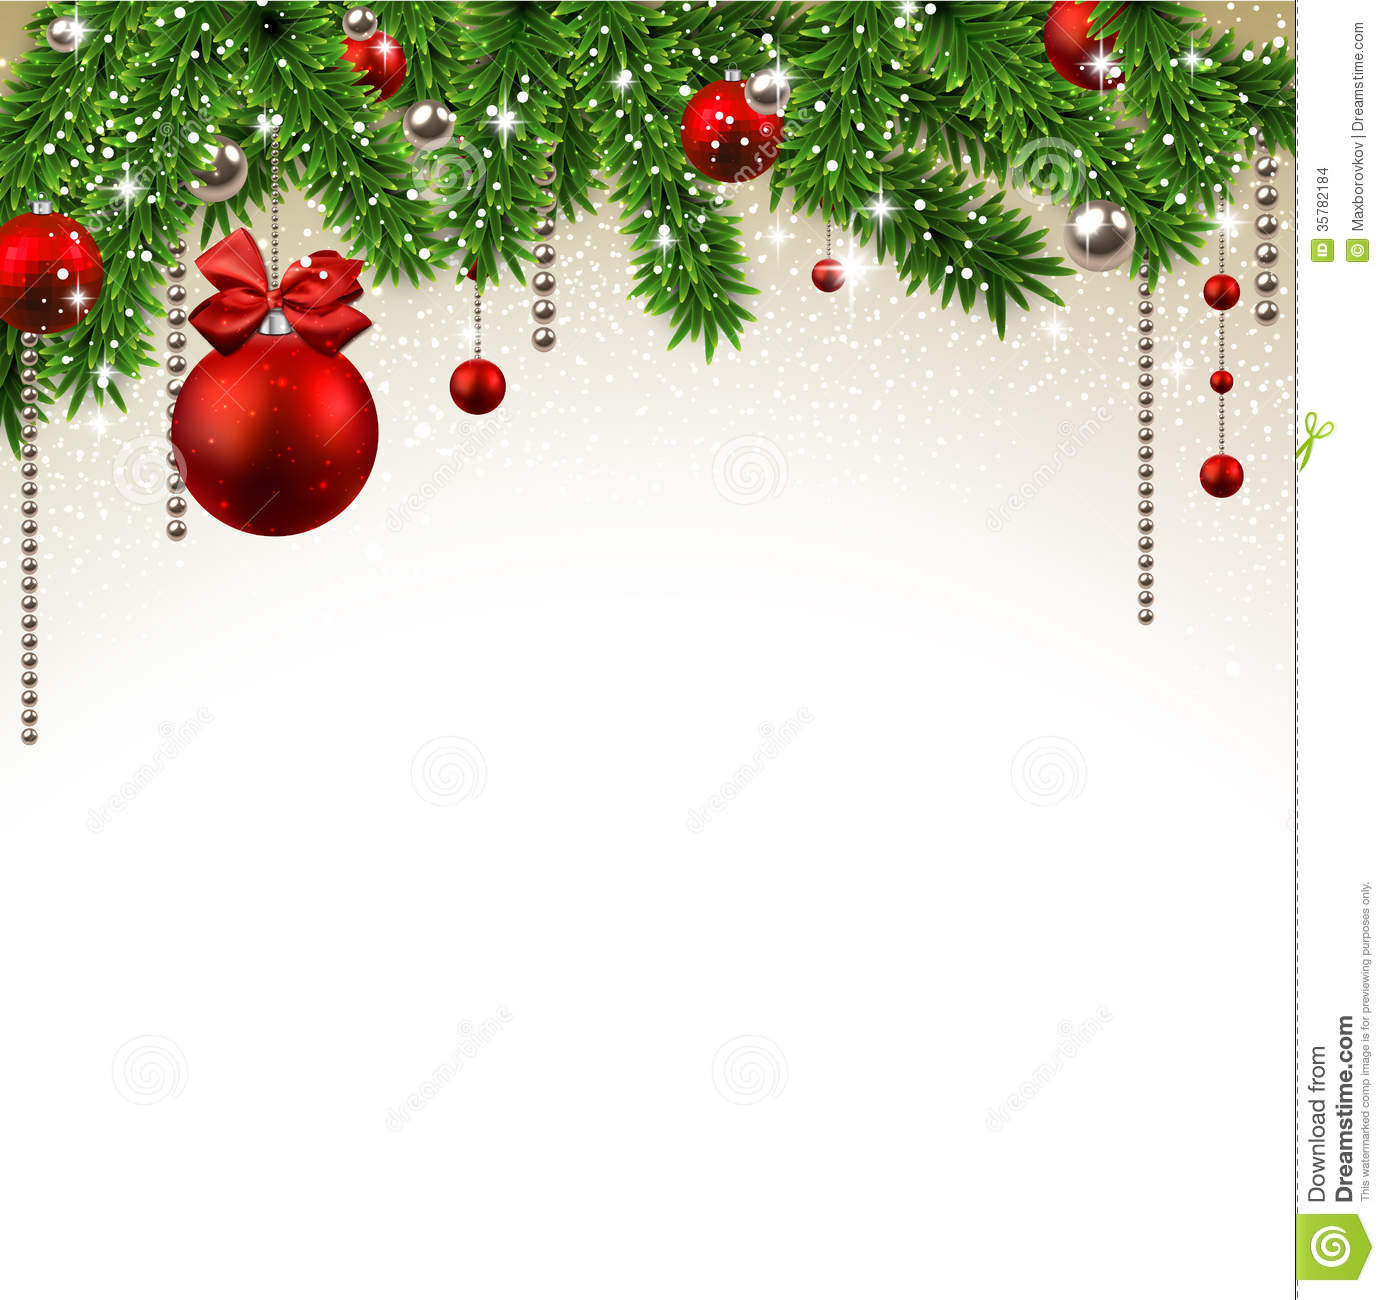 Christmas Decorations Background Pictures: Christmas Background With Fir Branches And Balls. Stock